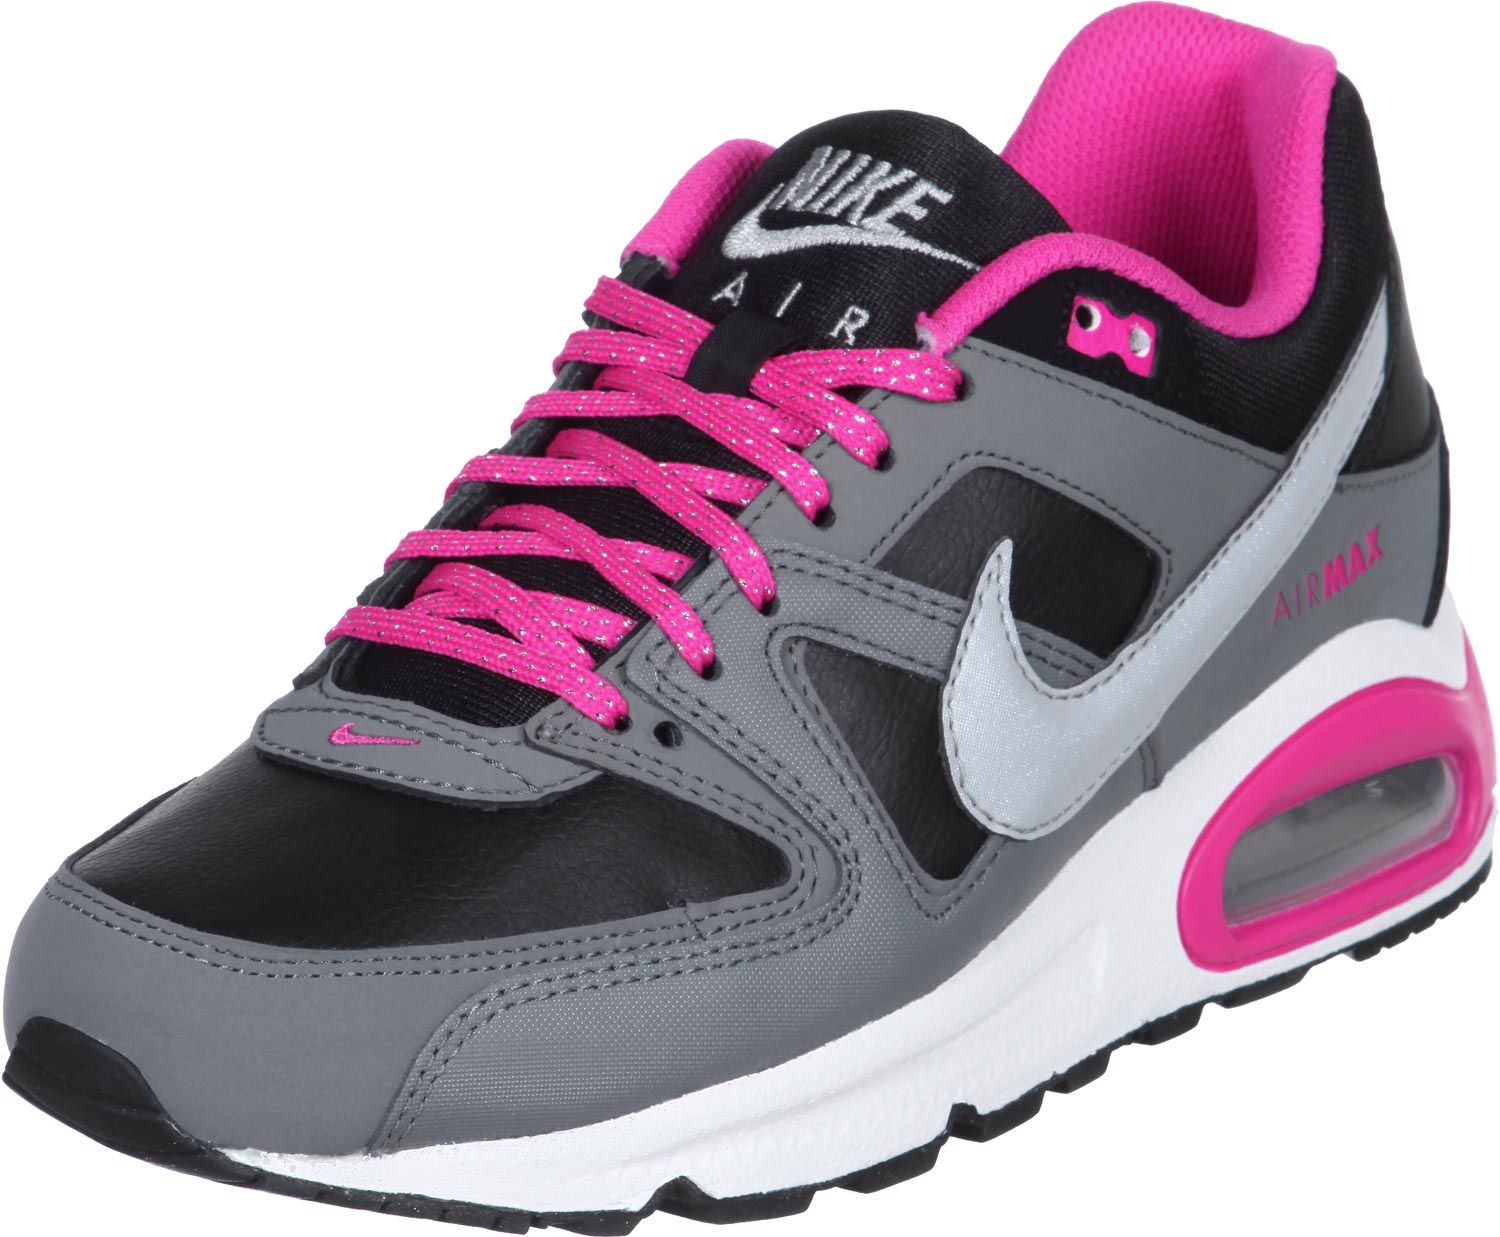 60152fd9ef sale nike air max command youth gs schuhe grau pink f3de7 07949; get nike  womens vivid pink athletic shoes sz 6.5 new nike womens vivid pink athletic  custom